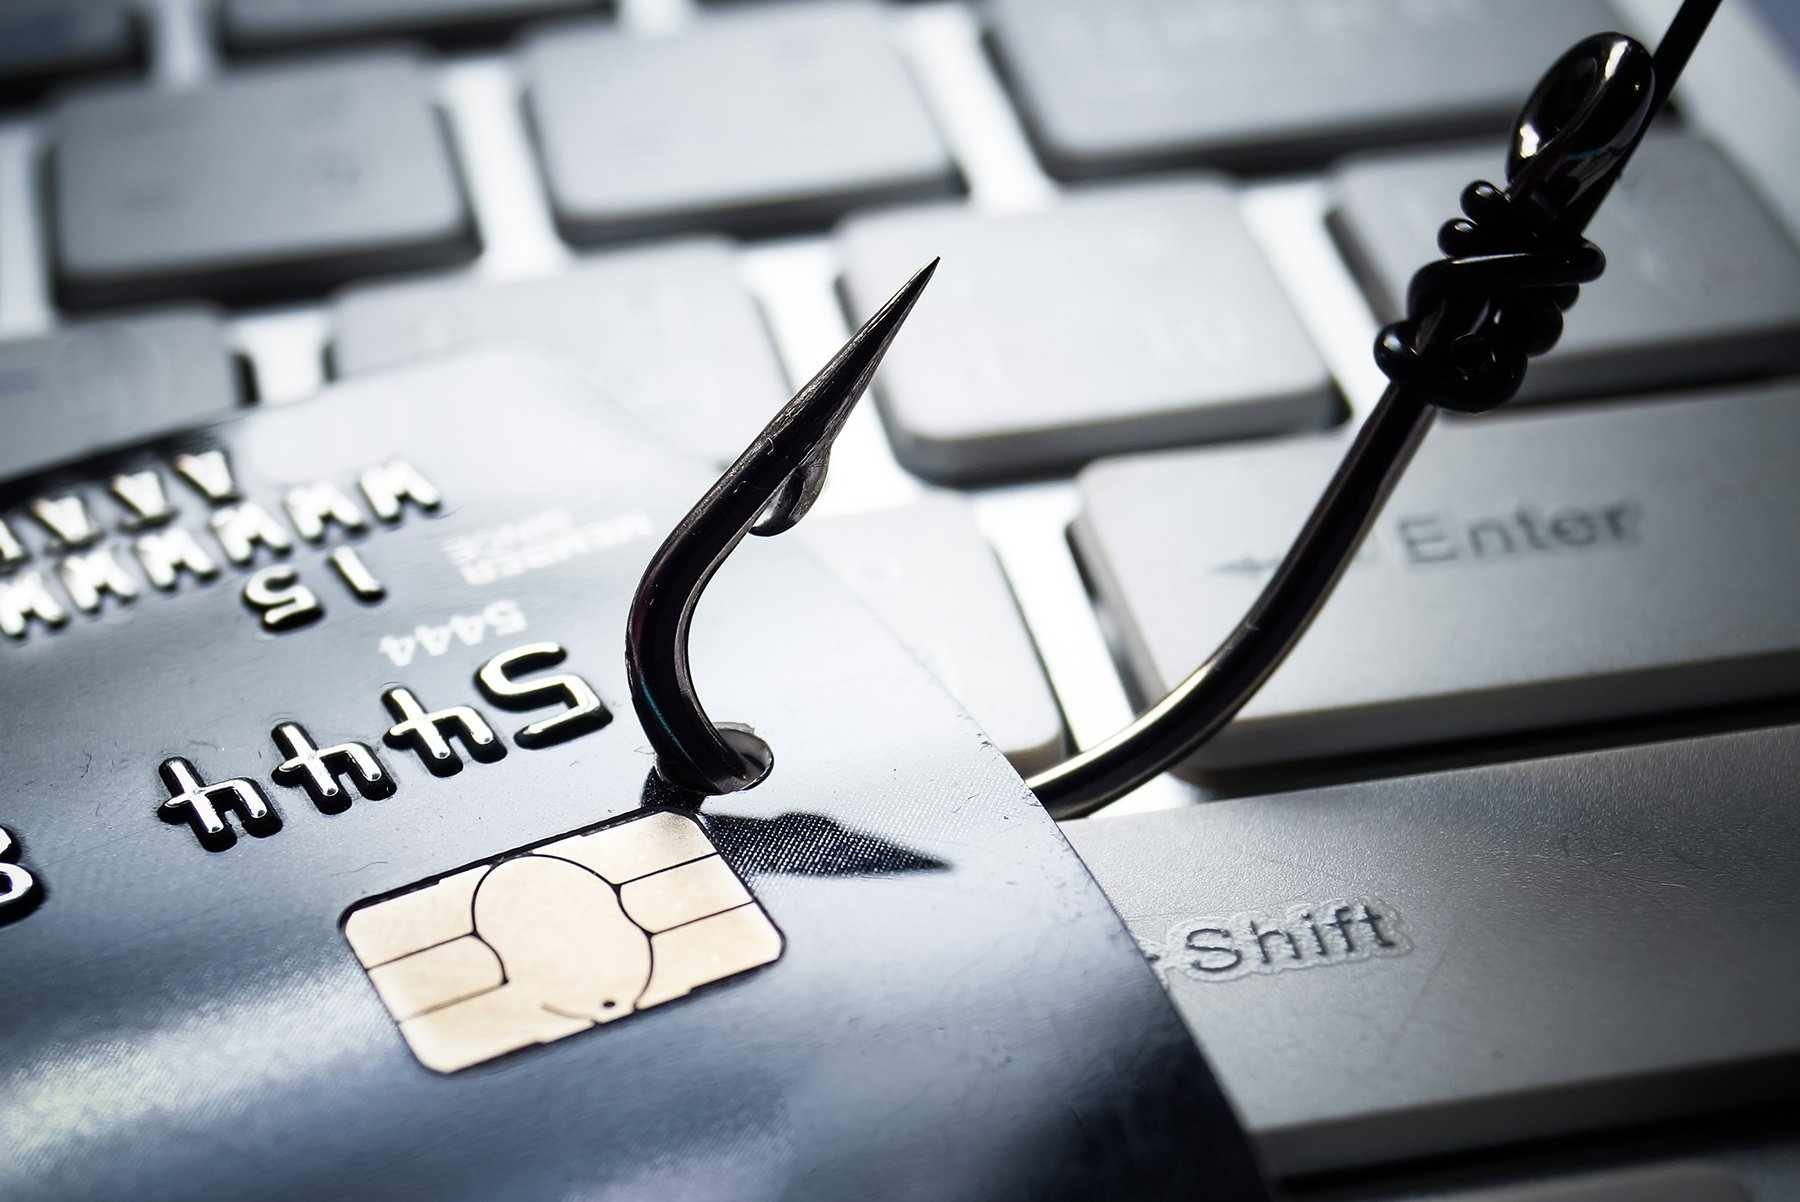 Phishing Attack on your business